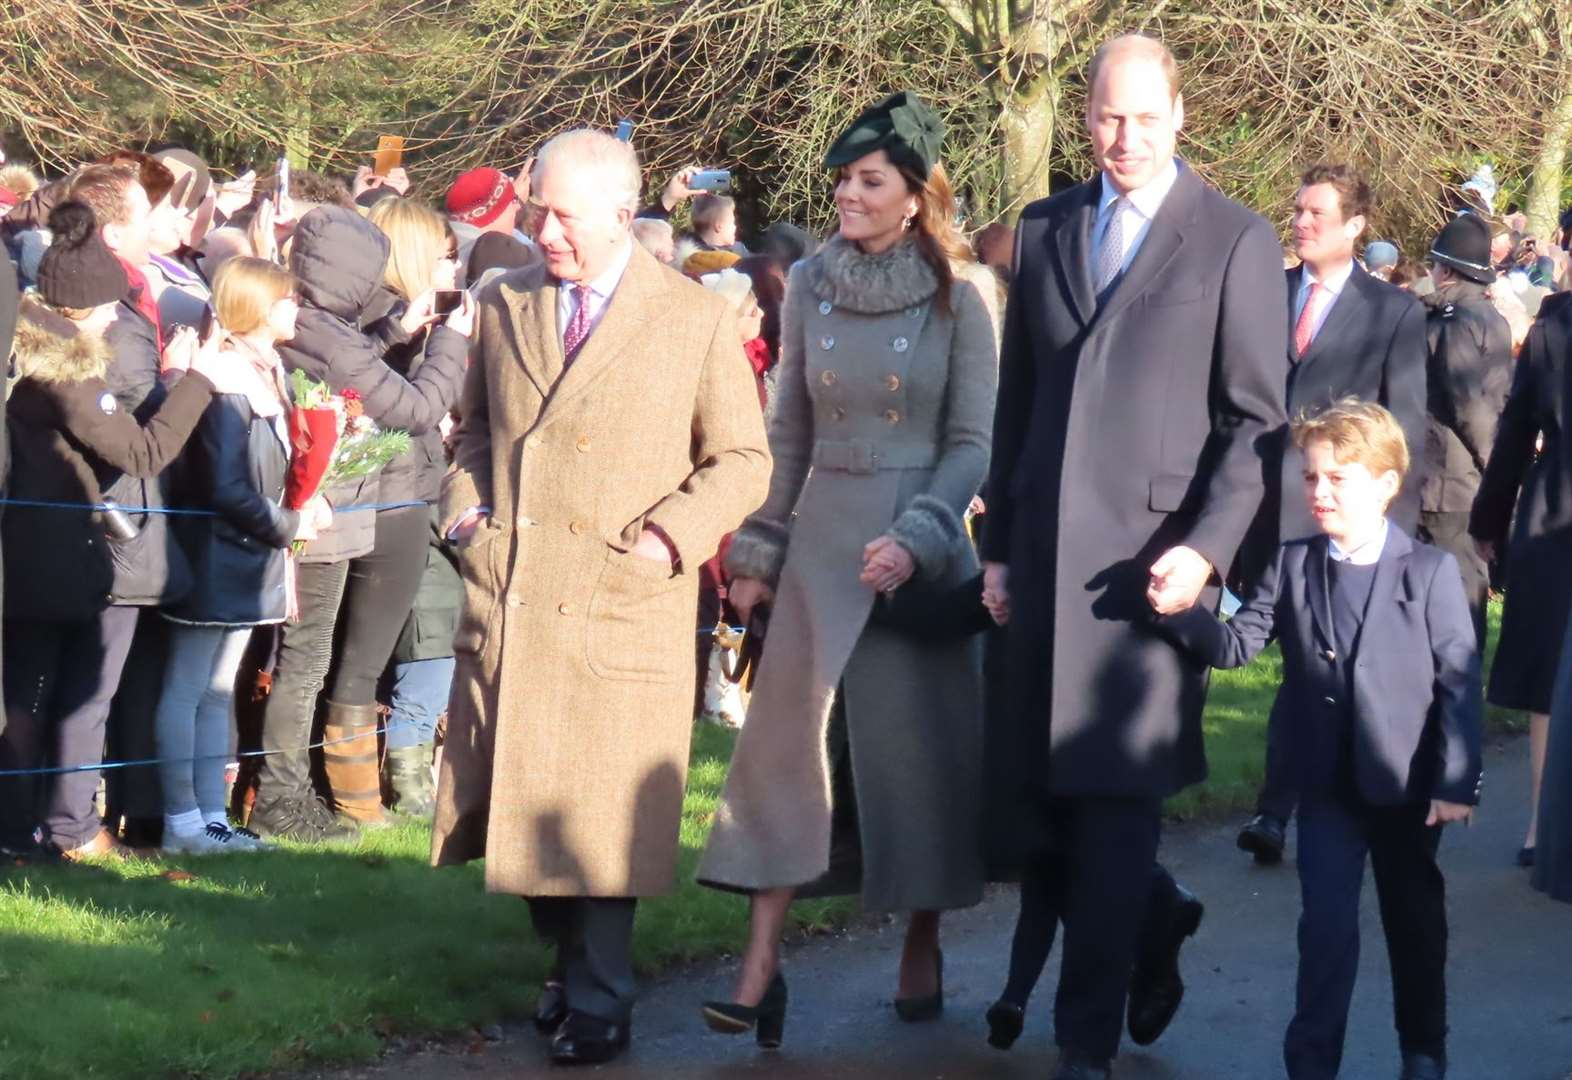 Grantham couple greet Royal family at Sandringham on Christmas Day